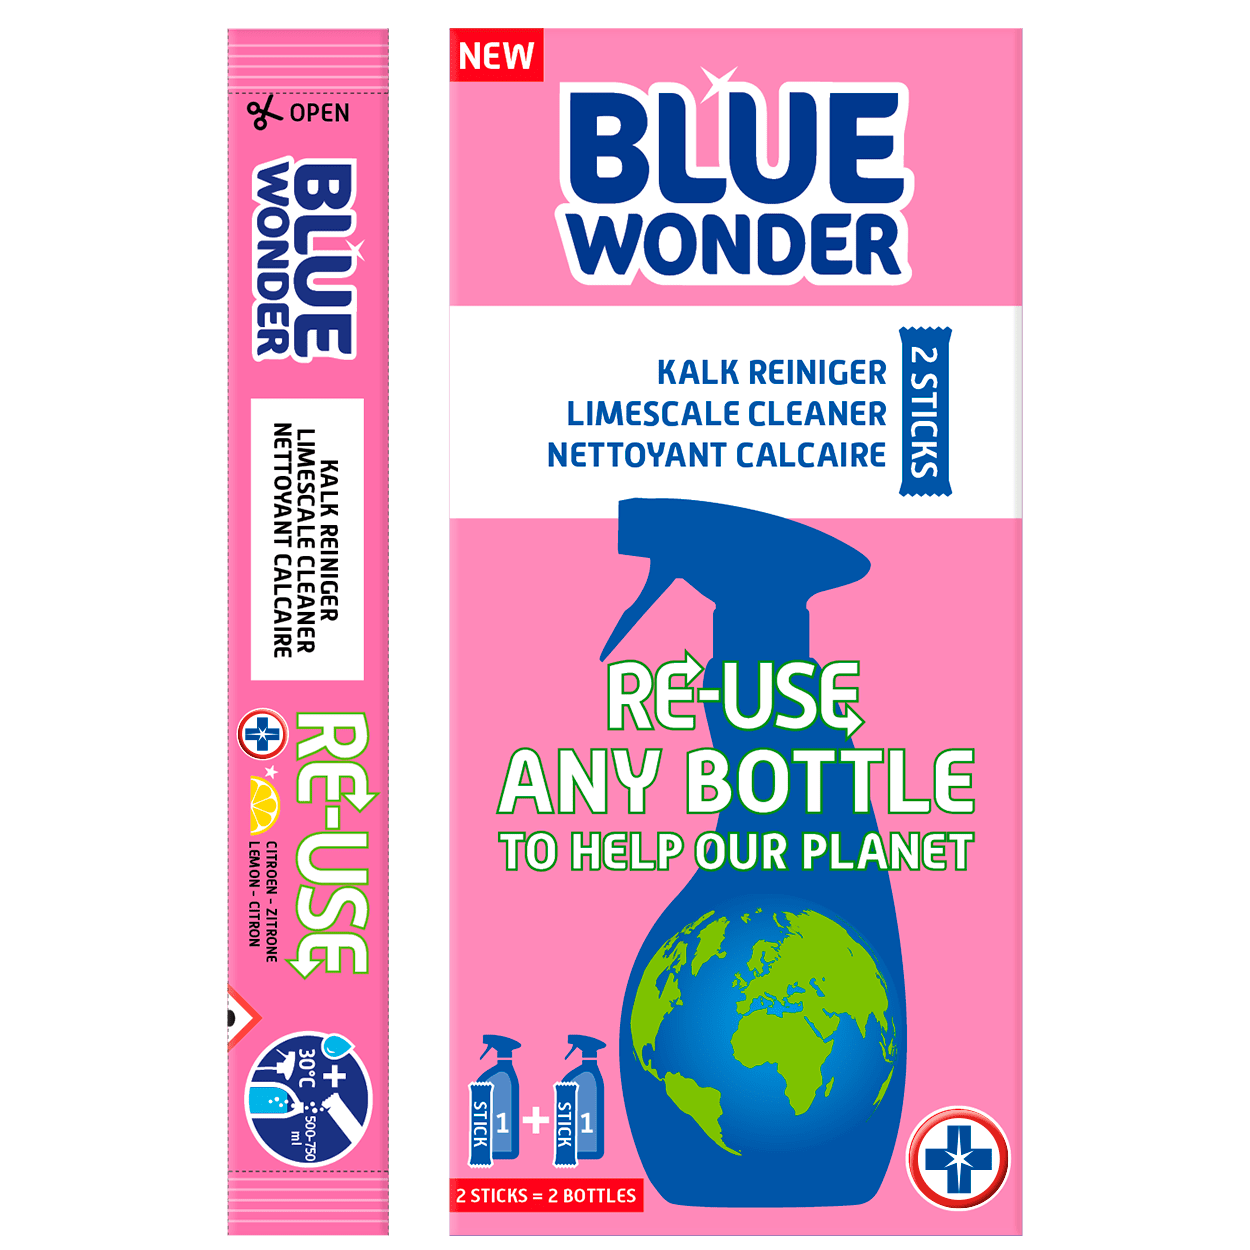 This box Blue Wonder contains 2 very powerful sticks. The contents of 1 stick easily dissolves in a bottle with 500-750 ml warm water, transforming into a strong MULTI-HYGIENIC CLEANER, LIMESCALE CLEANER OR KITCHEN DEGREASER. Reusing your plastic bottles will help our planet stay blue – patent pending. 100% vegan!  PREPARE CLEANER IN 3 STEPS RE-USE: Take a used bottle. Rinse the bottle & sprayer with water. Fill the bottle with 500-750 ml warm water (30° Celsius). FILL: Pour the contents of 1 stick in the bottle with warm water, attach the sprayer and wait 1-3 minutes. Wash your hands well afterwards. SHAKE: Shake the bottle a little and your LIMESCALE CLEANER is ready for use!